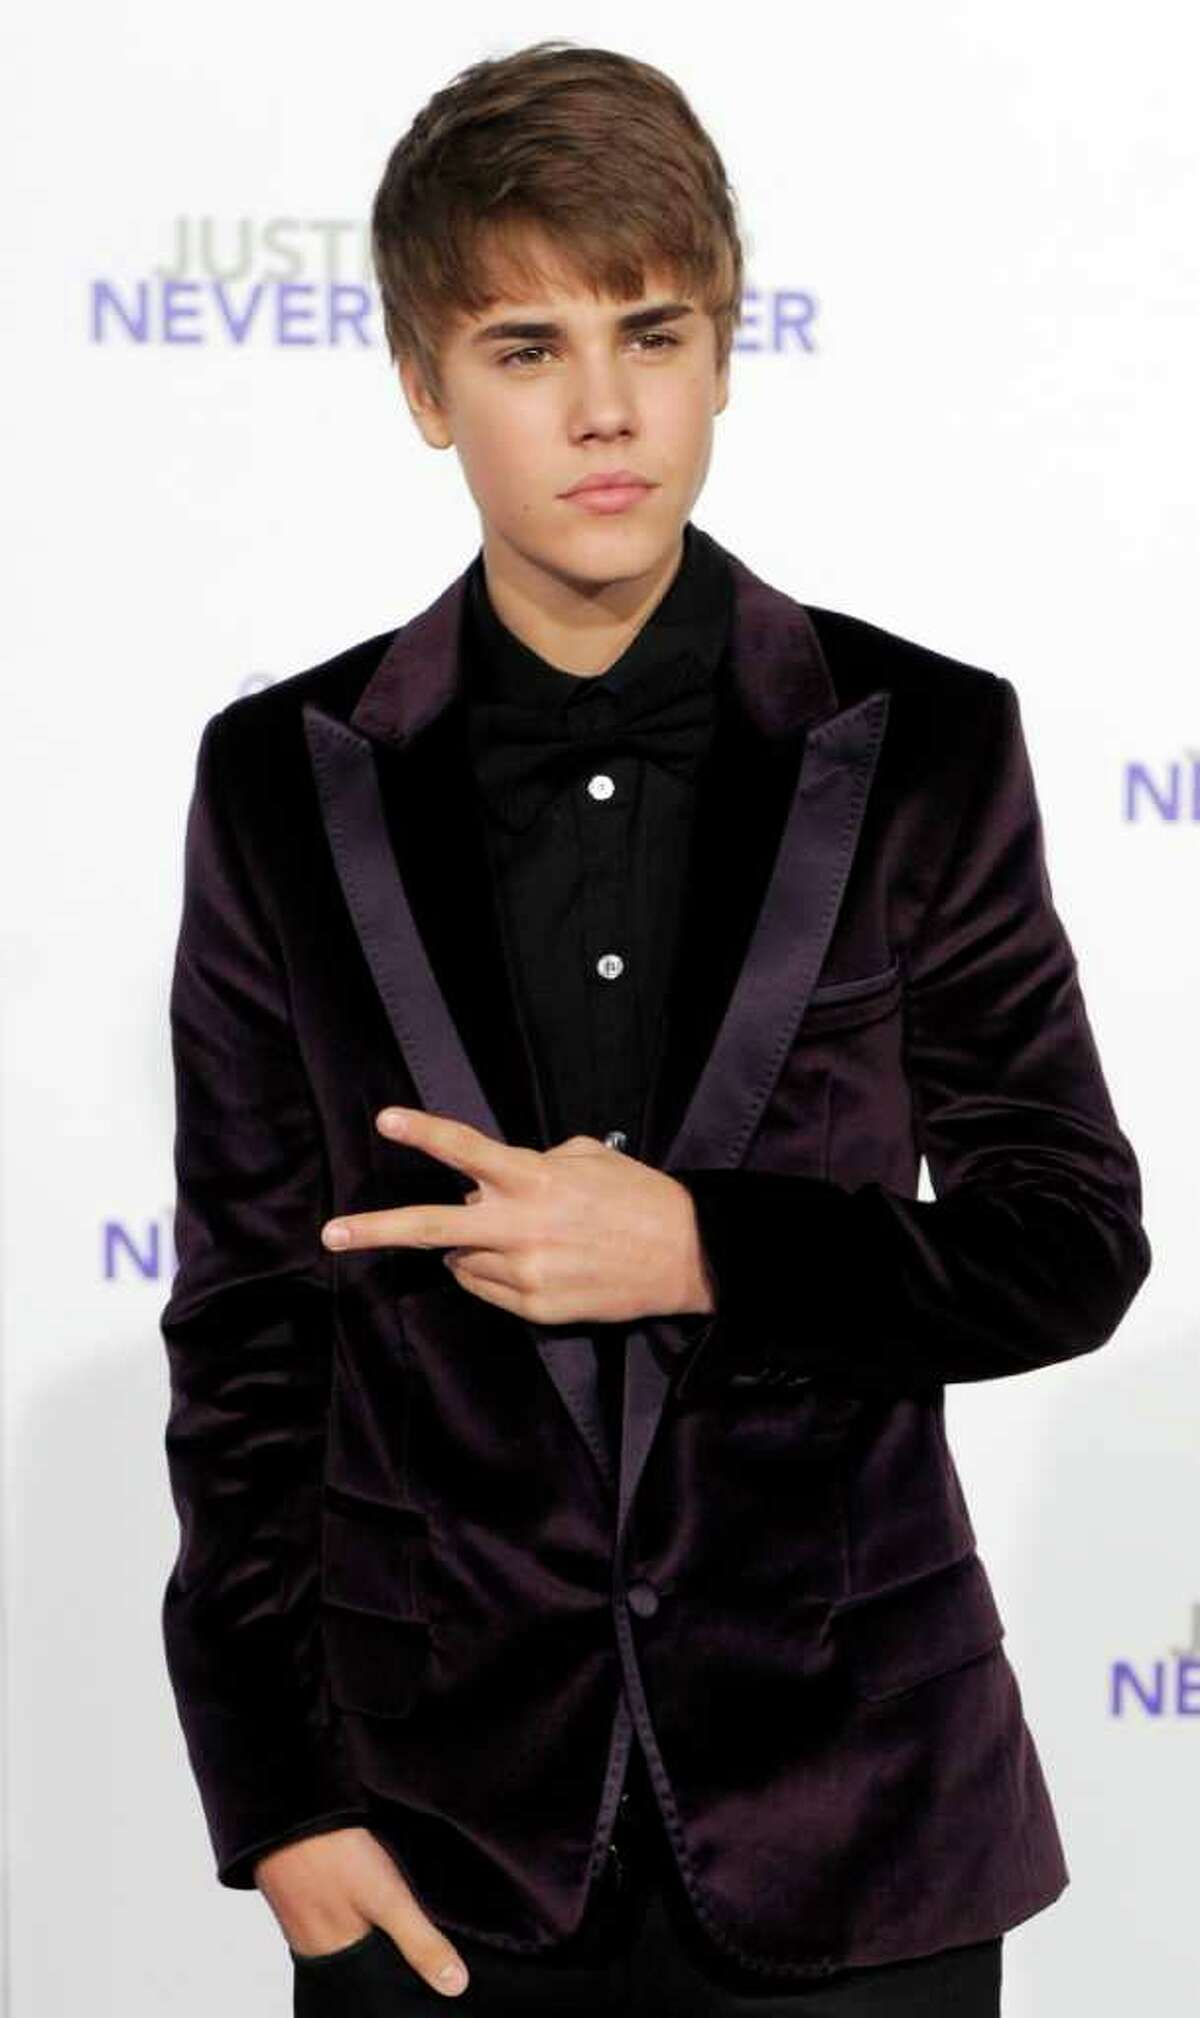 Justin Bieber, subject of the documentary film